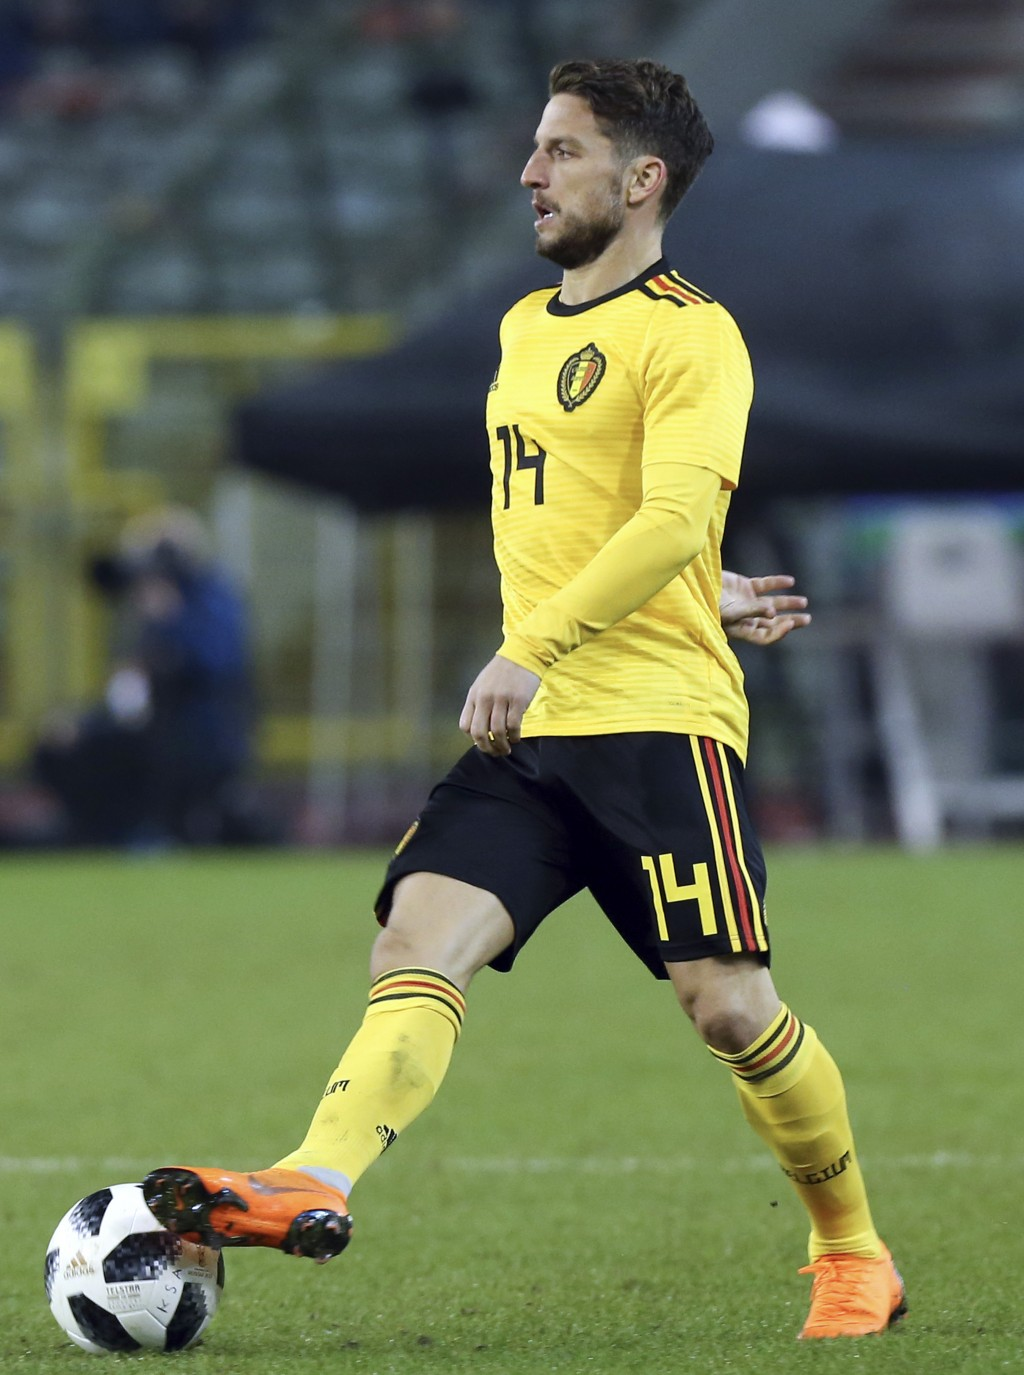 In this photo taken on Tuesday, March 27, 2018, Belgium's Dries Mertens controls the ball during a friendly soccer match between Belgium and Saudi Ara...